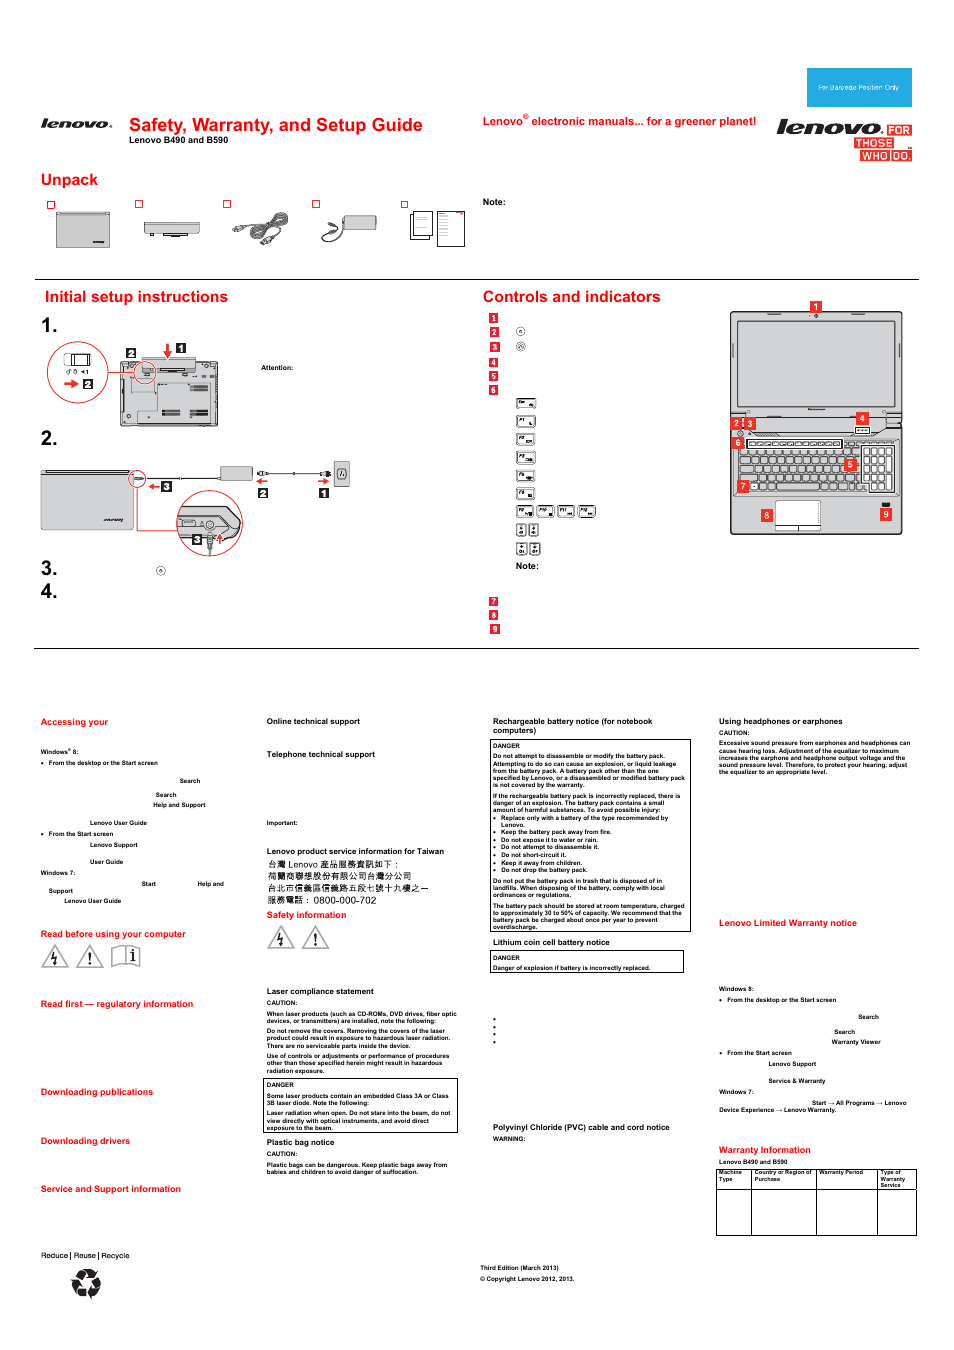 Lenovo B590 Notebook User Manual | 2 pages | Also for: B490 Notebook